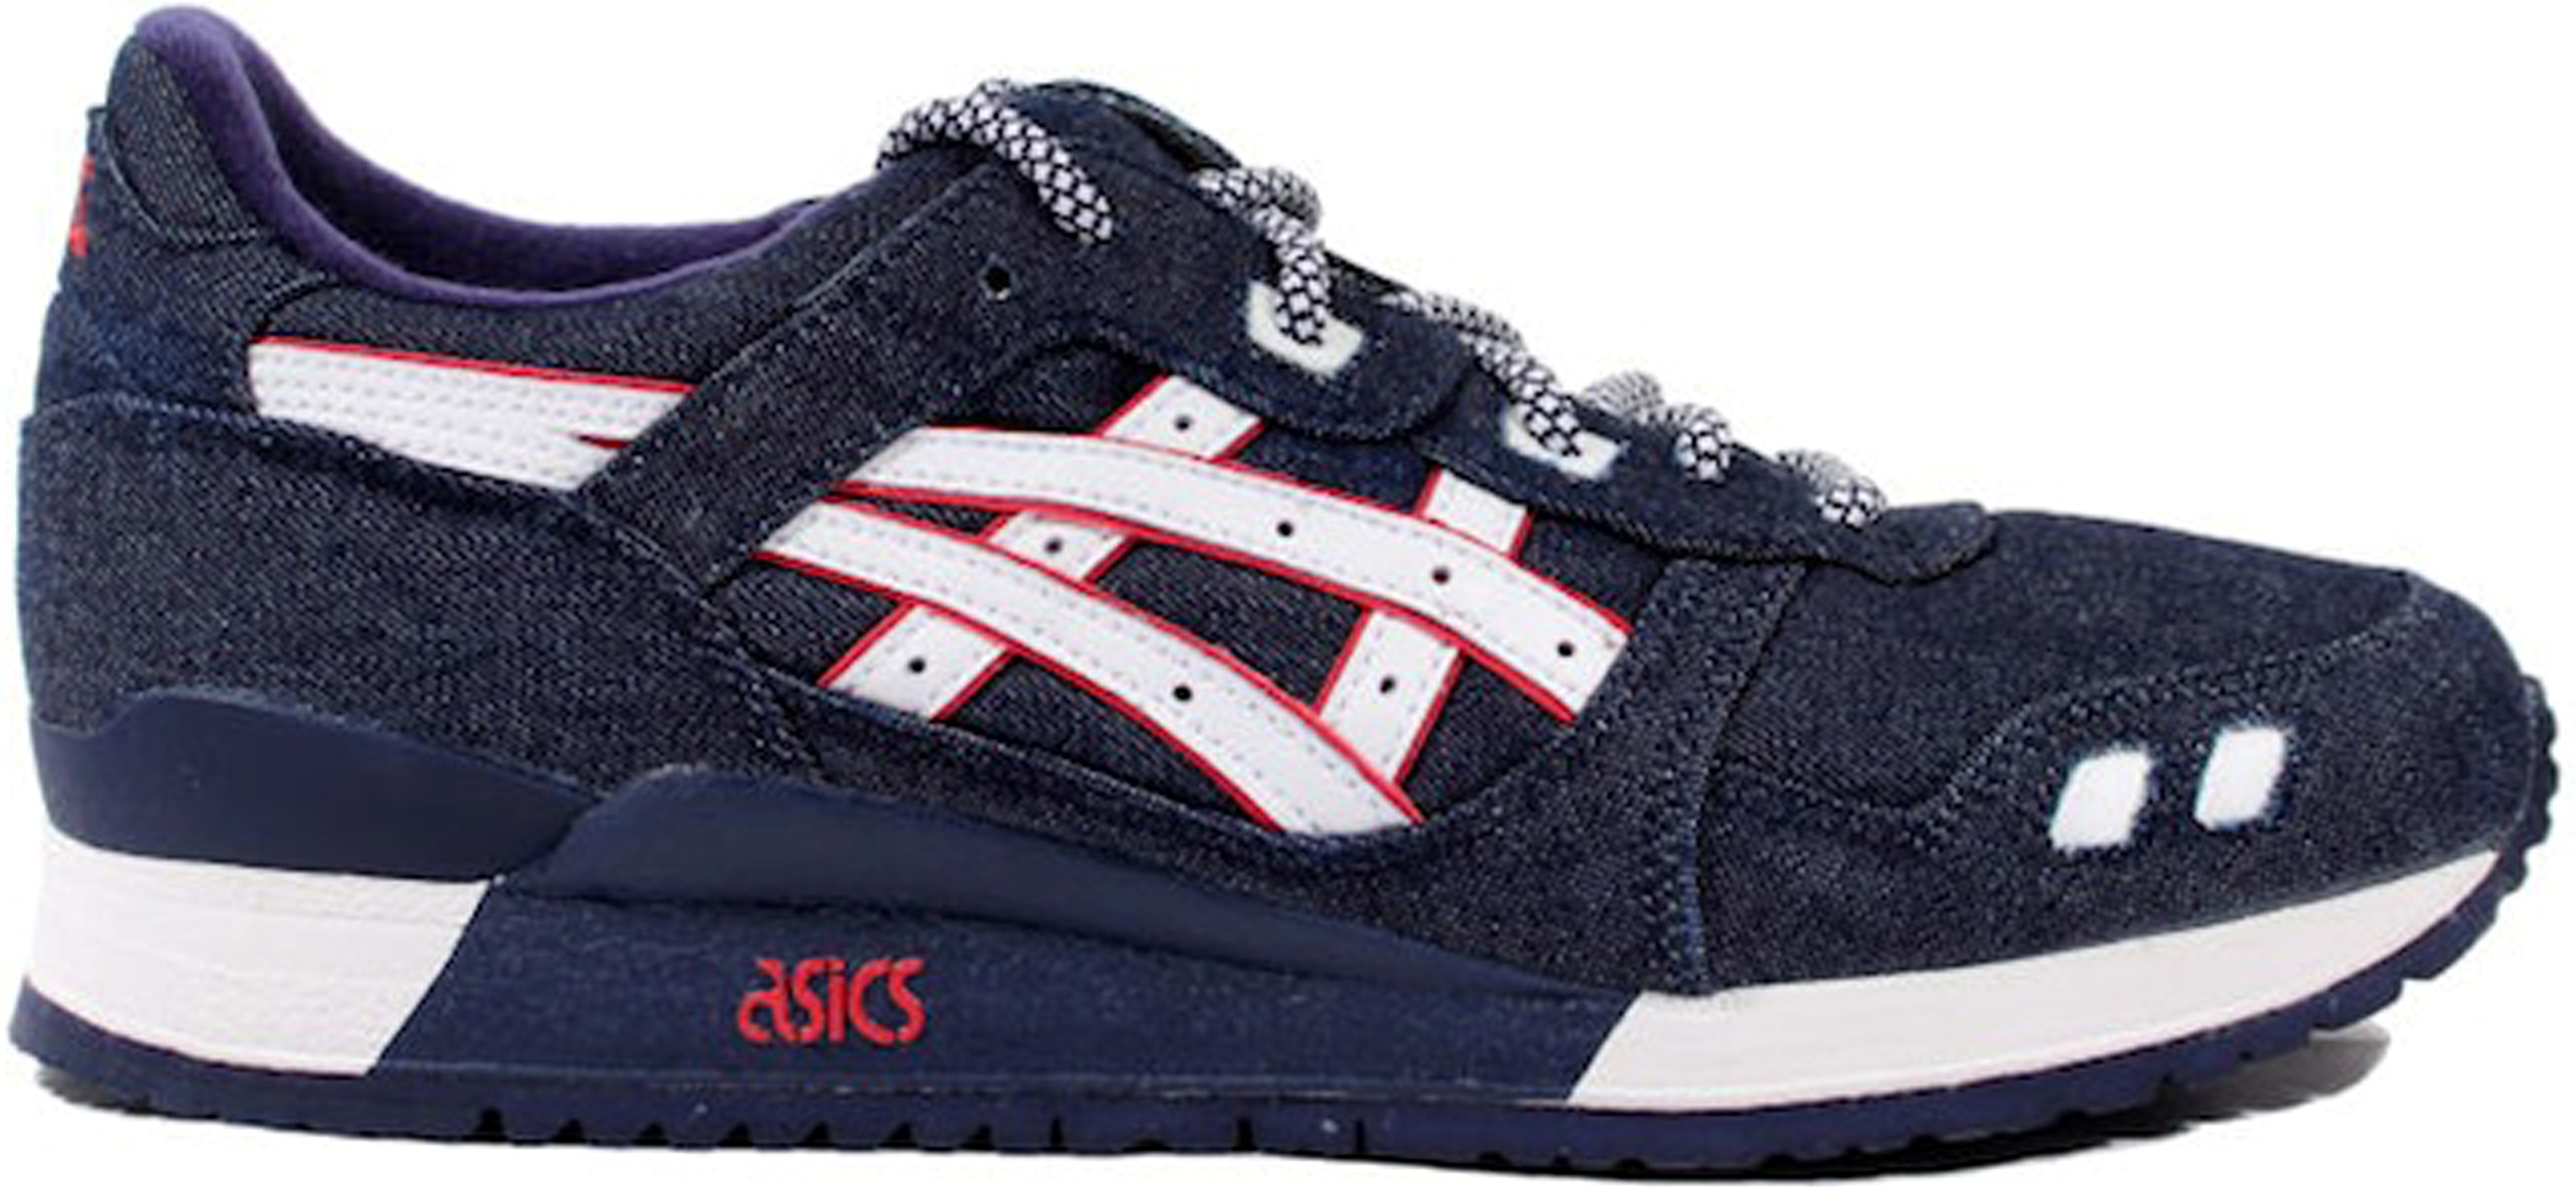 asics gel lyte 3 selvedge